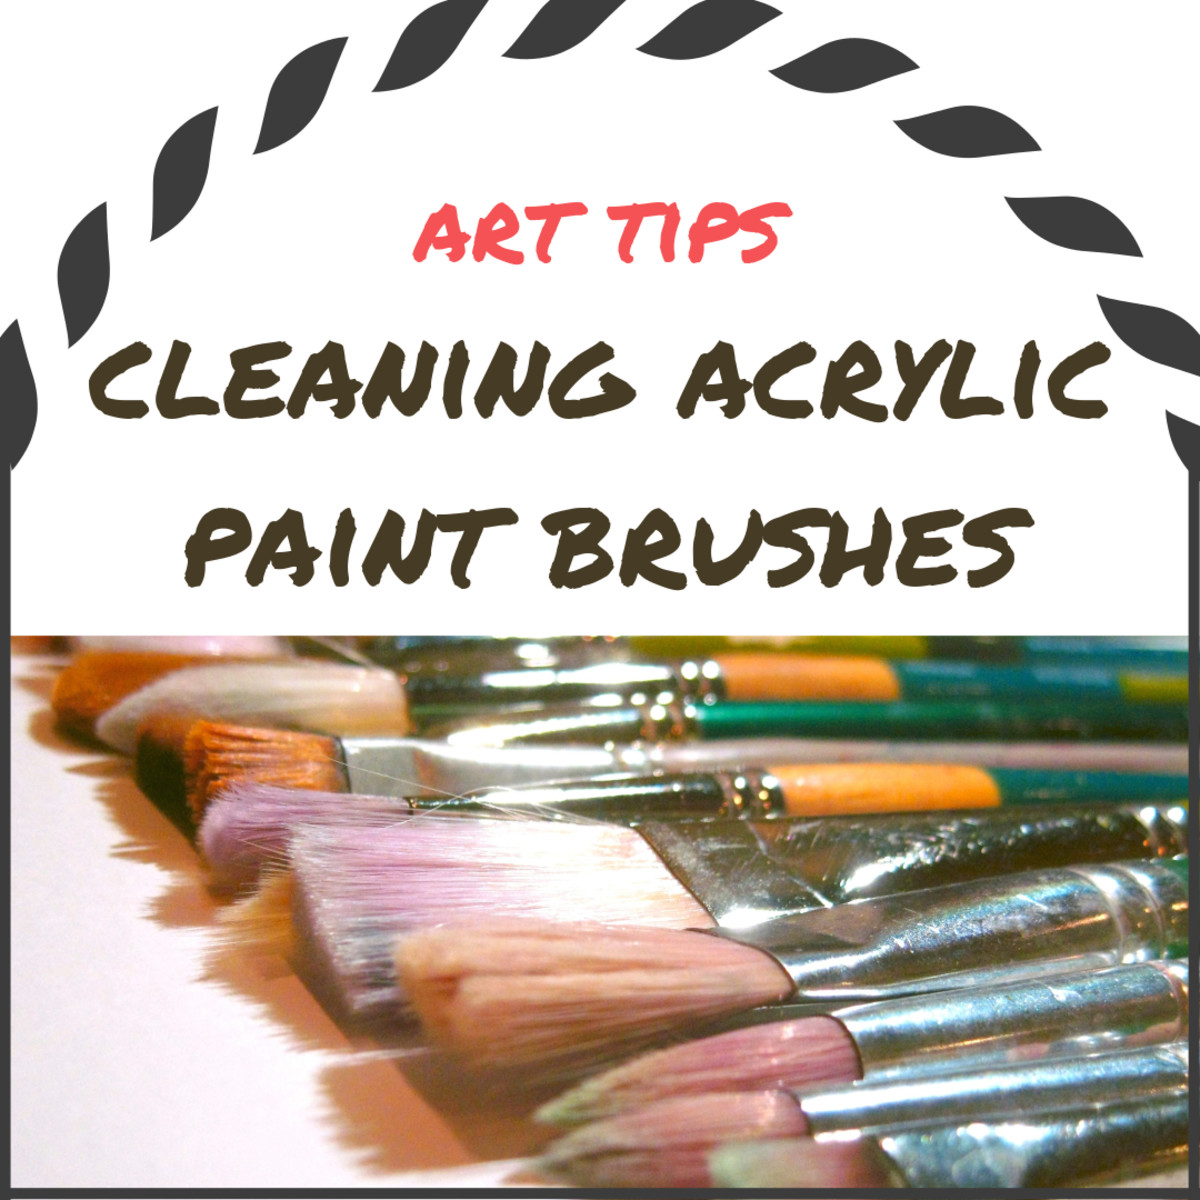 Tips for cleaning acrylic paint brushes. How to clean art brushes in 10 steps and tips to keep them in good working conditions, just like new for a long time.